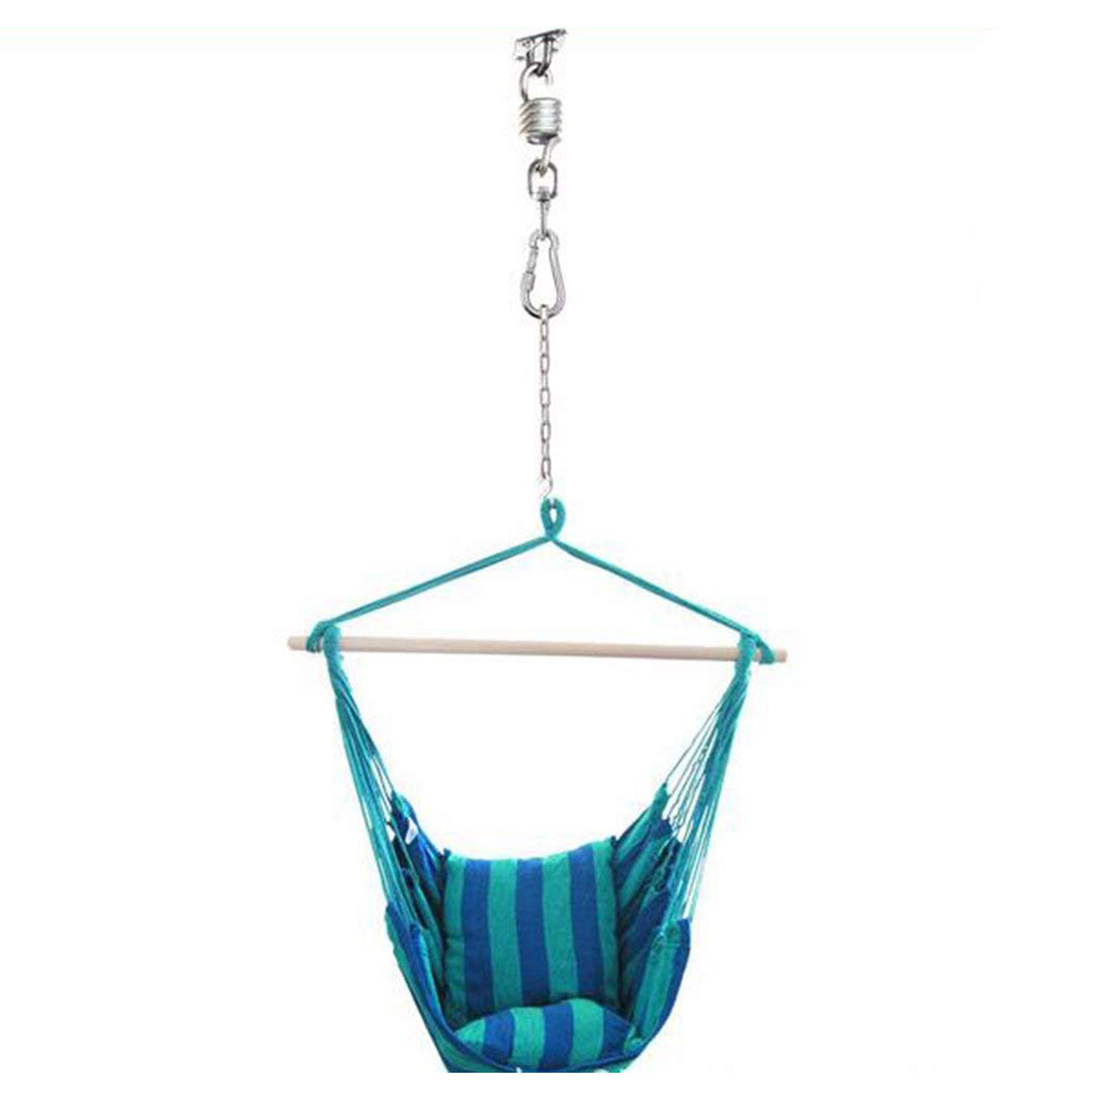 swing seat kit armchair tray swivel hook for hammock chair stainless steel hanging accessories indoor outdoor in hammocks from furniture on